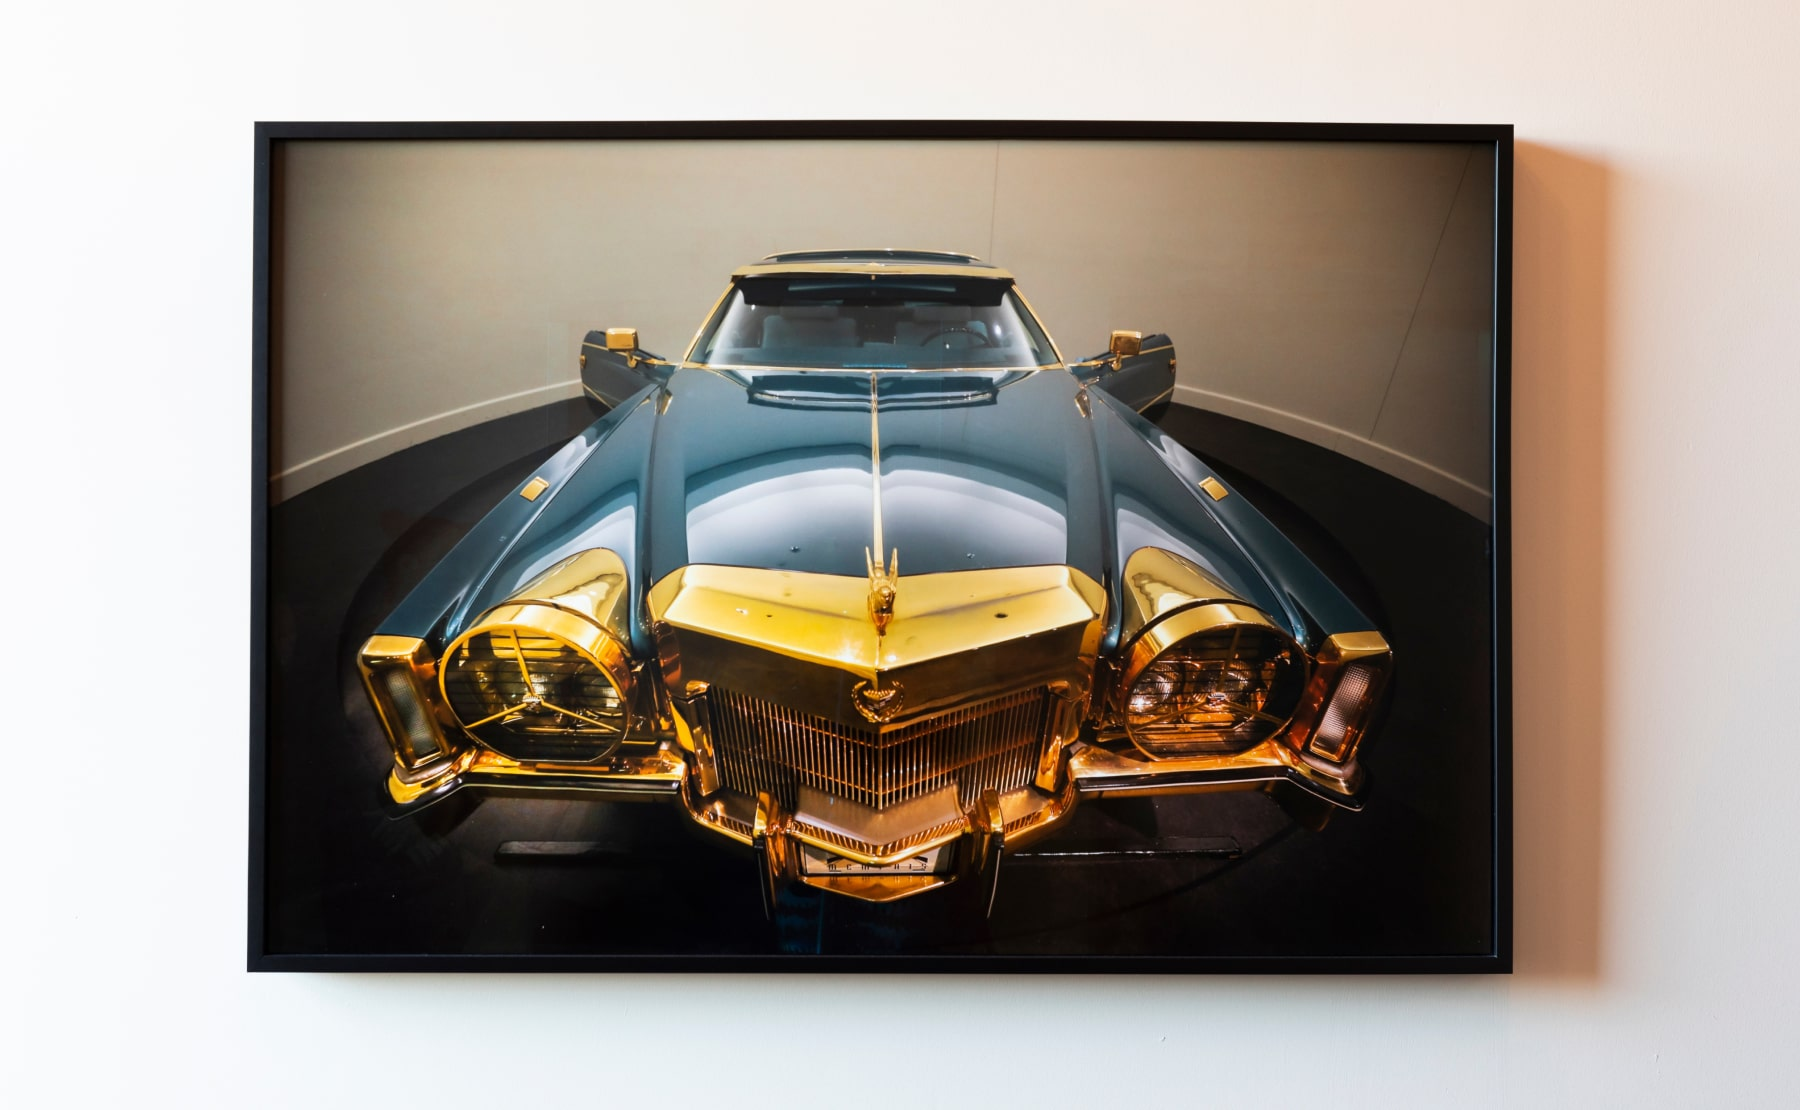 Lobby artwork of a classic car photograph at The Central Station